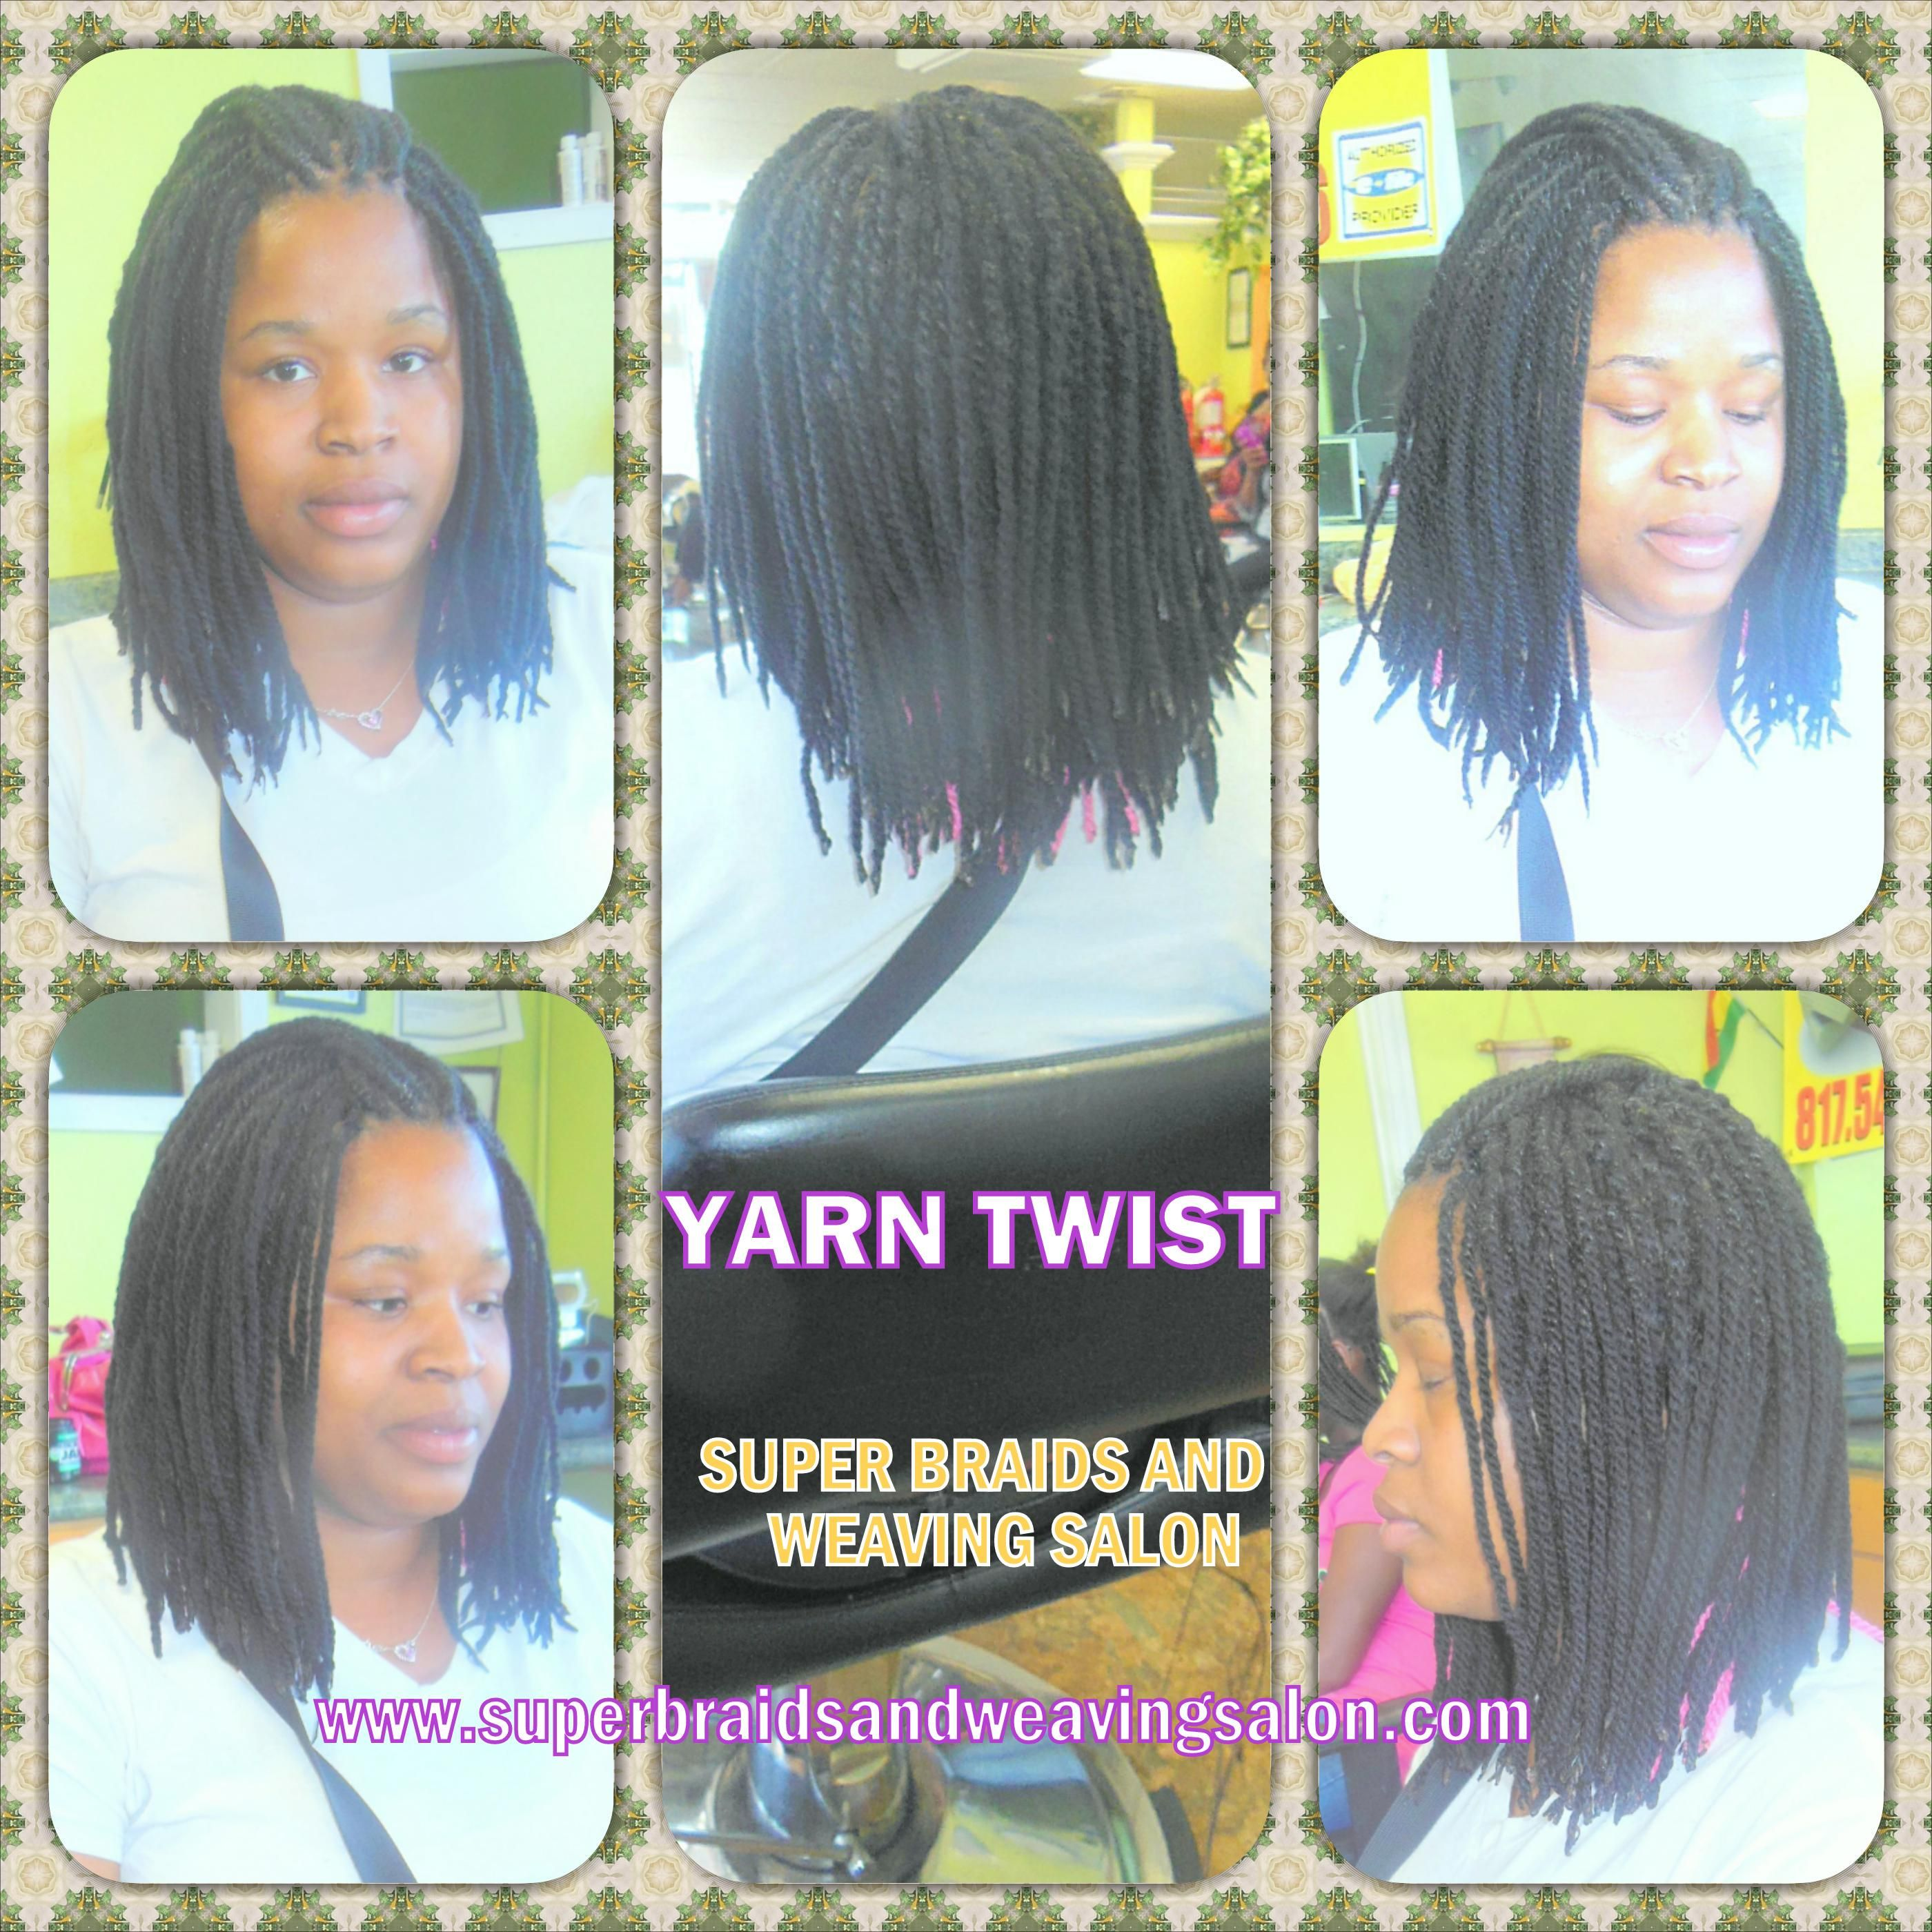 Super braids and weaving salon yarn braids or twist pinterest